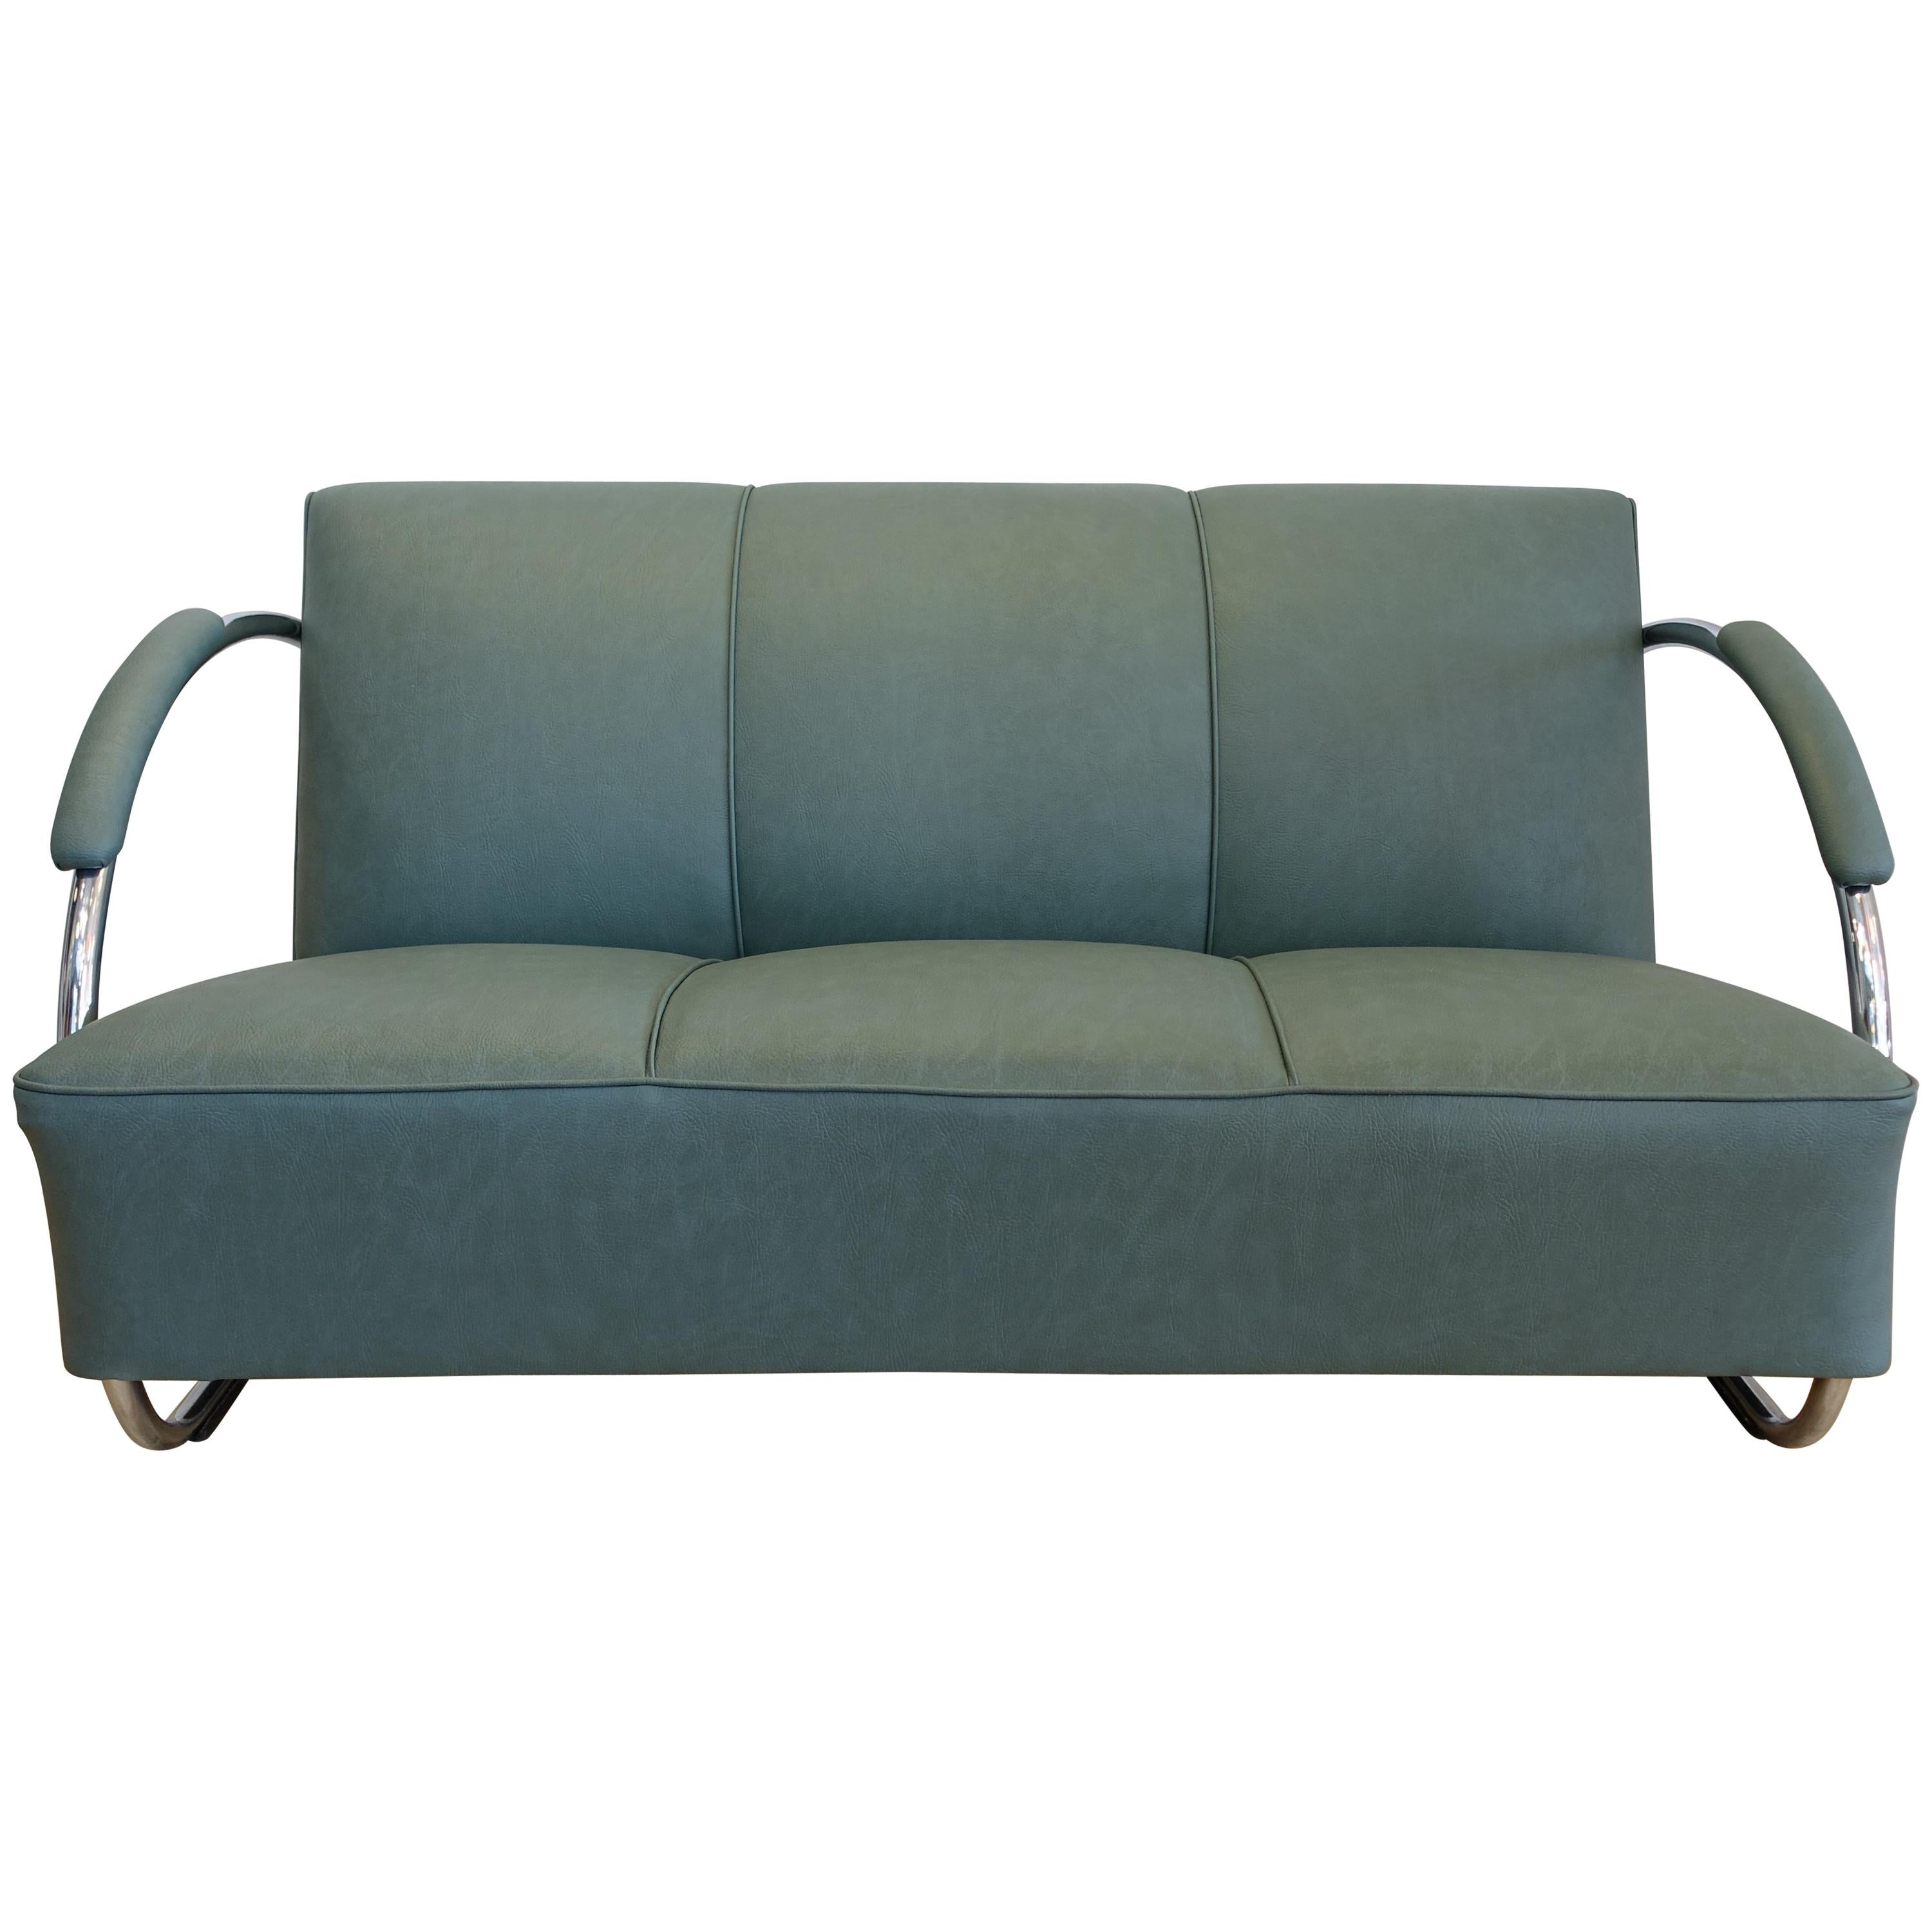 Streamline Chromed Steel And Green Synthetic Leather Sofa, 1930s For Sale